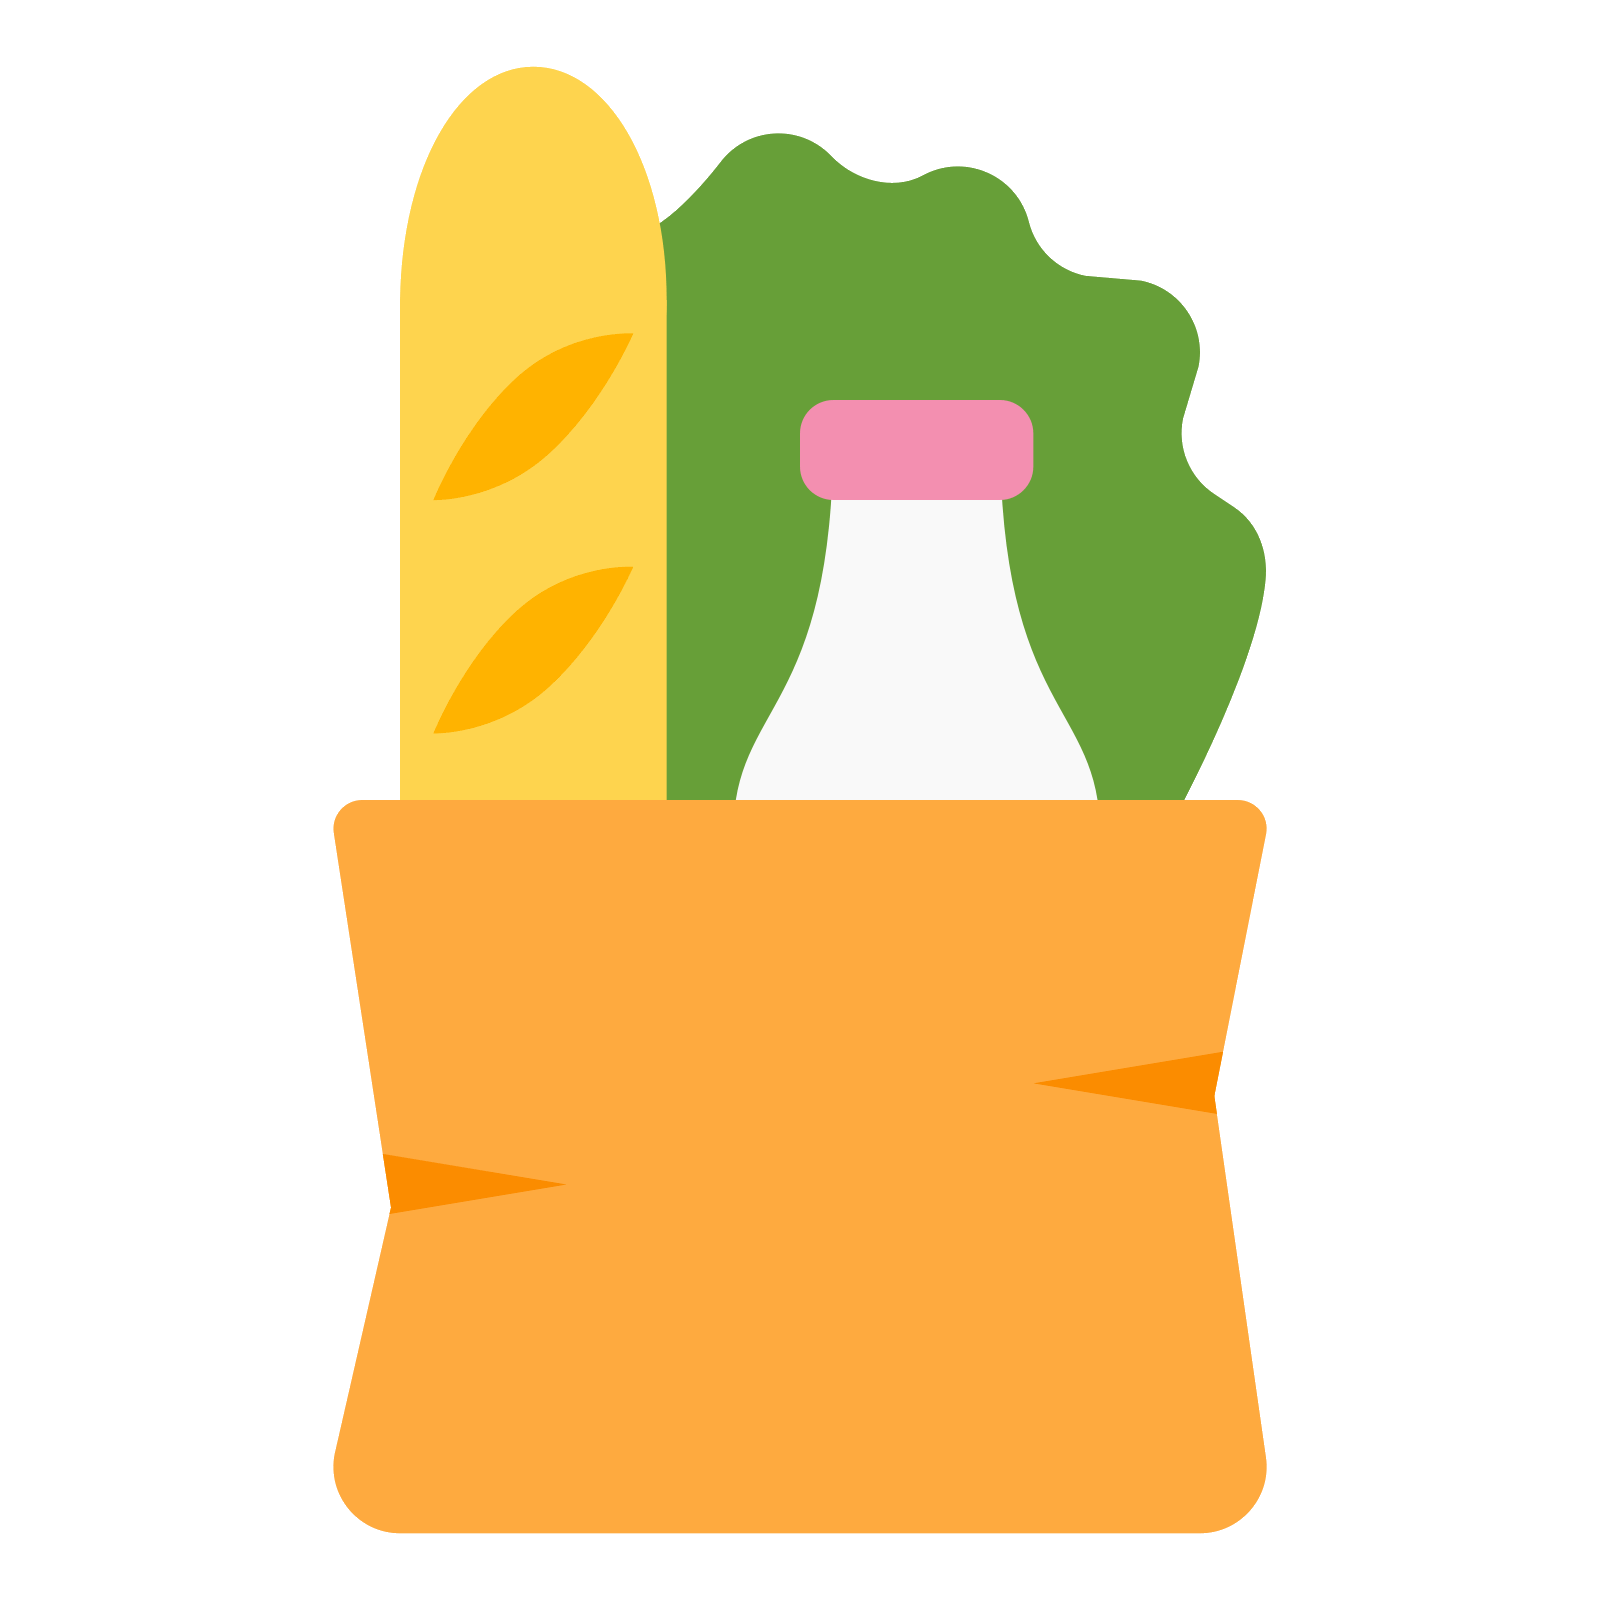 Groceries vector. Grocery bag icon free